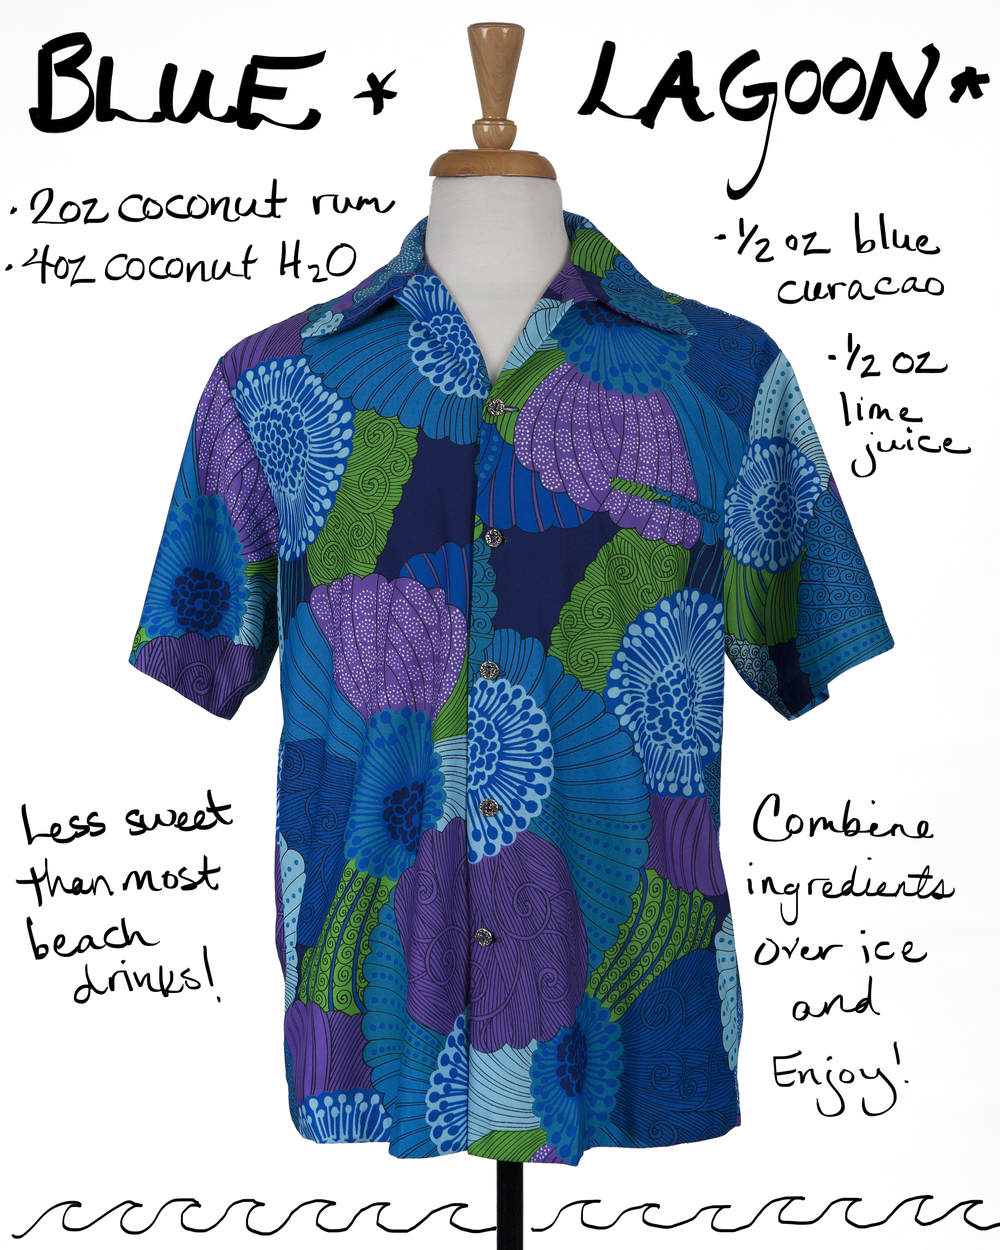 Vintage beach shirt and rum cocktail